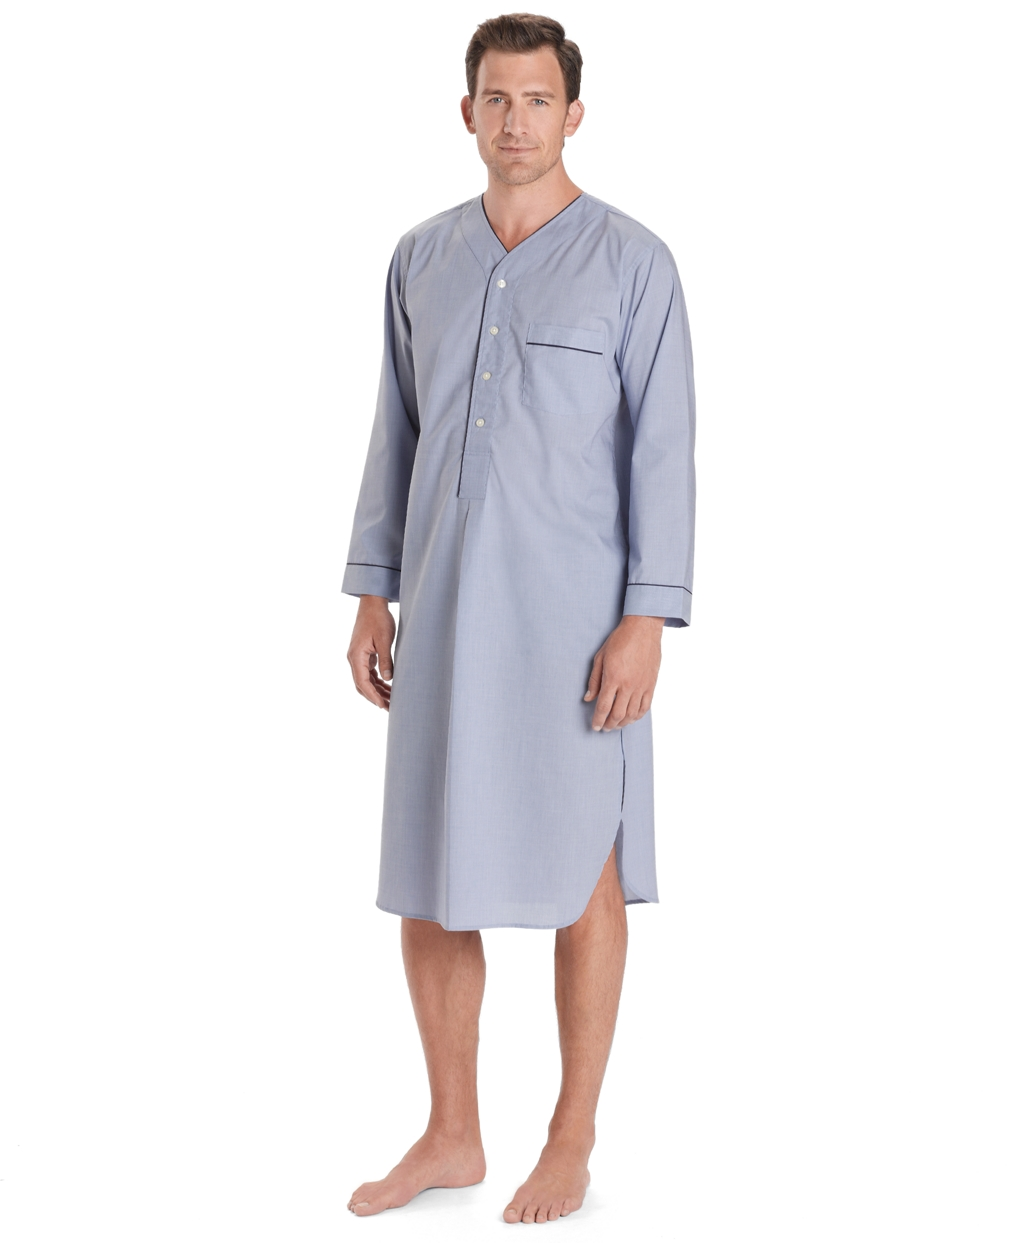 339b32755f Men s Wrinkle-Resistant Broadcloth Nightshirt